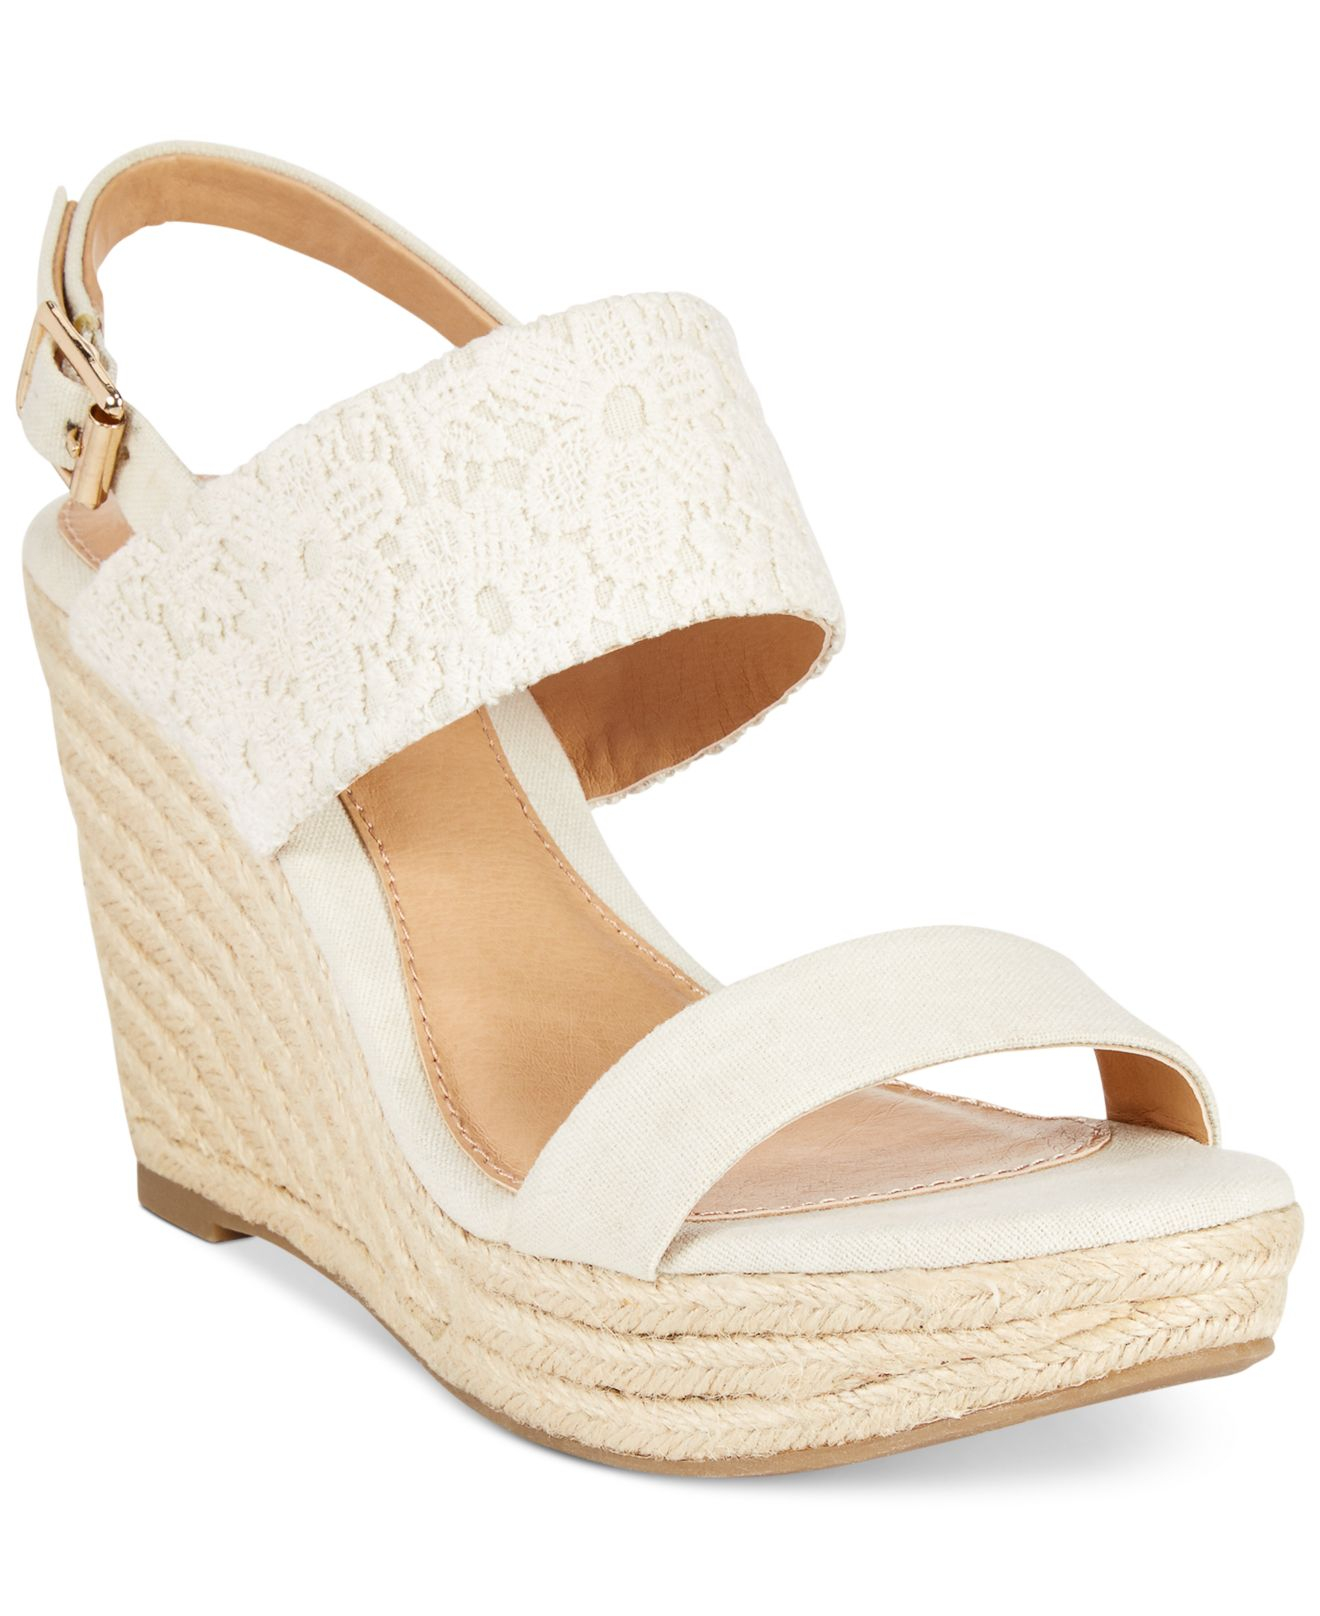 401f778356 Lyst - Report Kynsley Two-Piece Platform Wedge Sandals in Natural